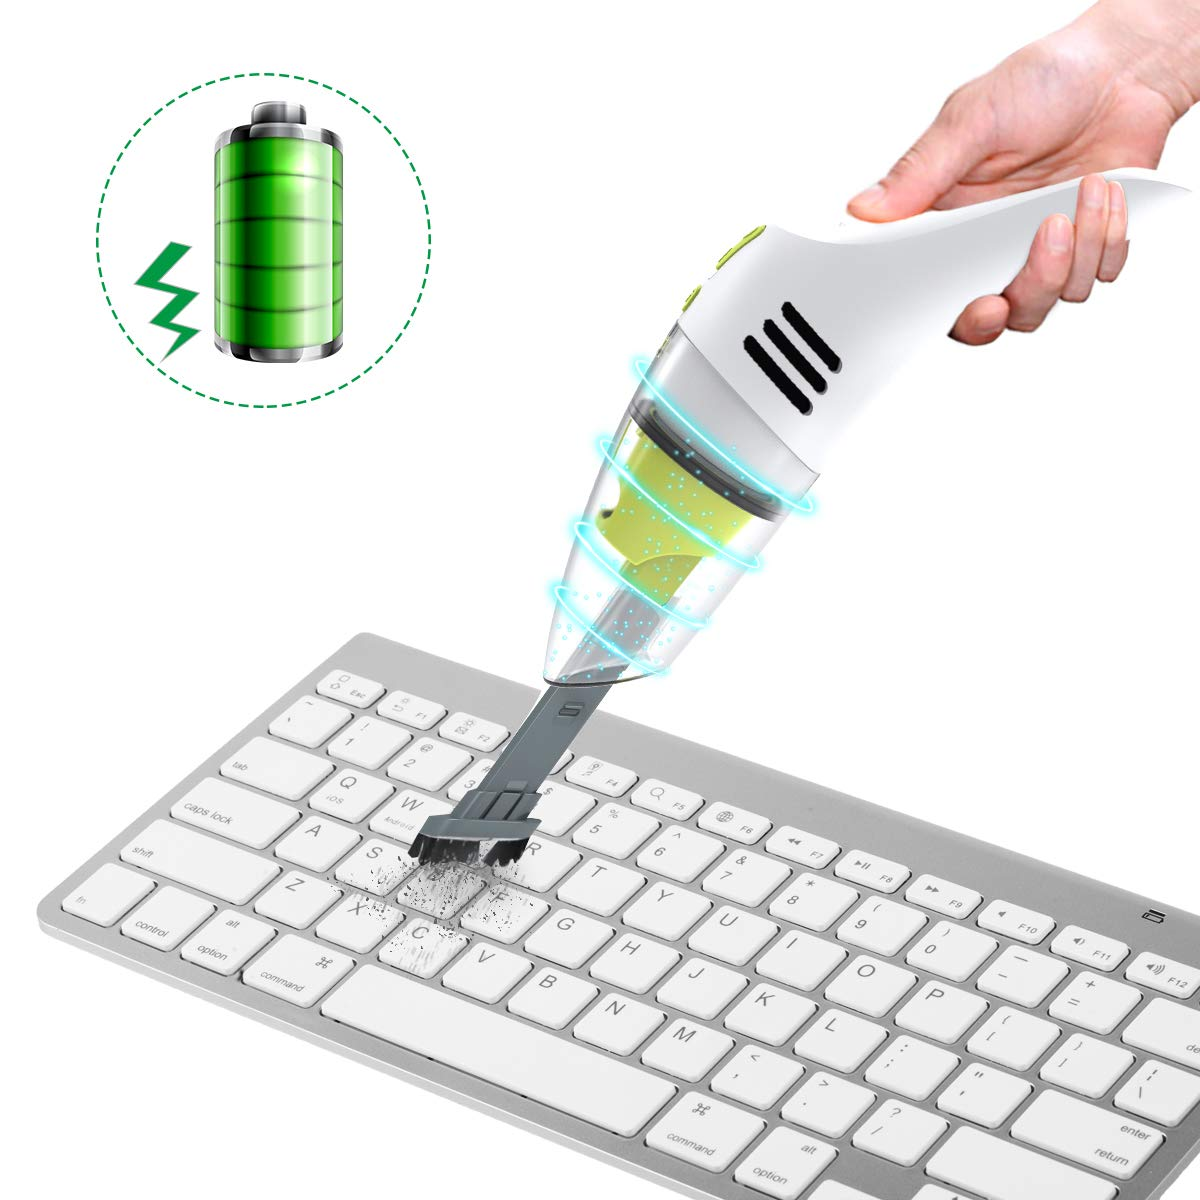 MECO ELEVERDE Keyboard Cleaner